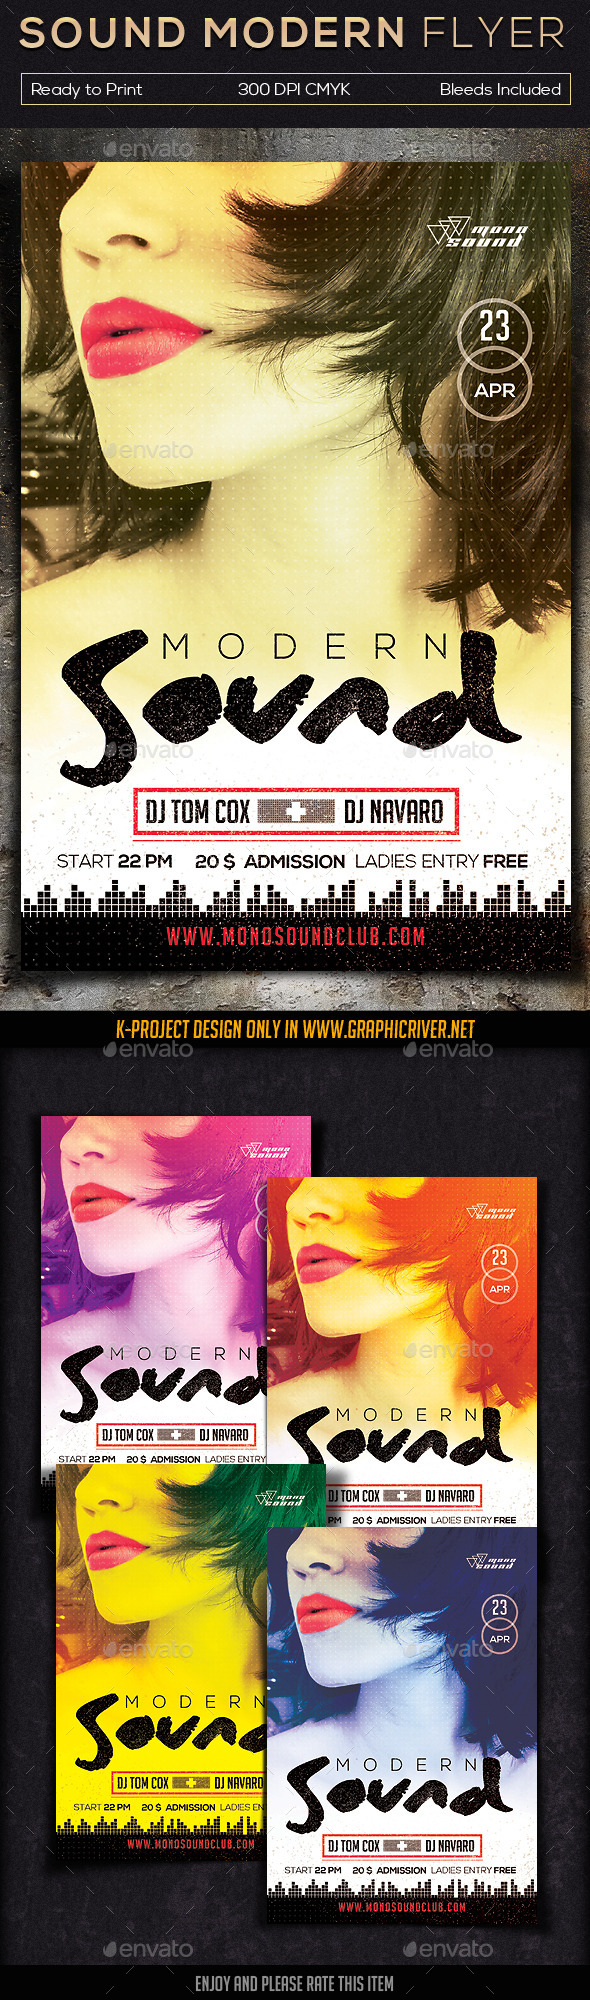 Sound Modern Flyer V2 - Clubs & Parties Events